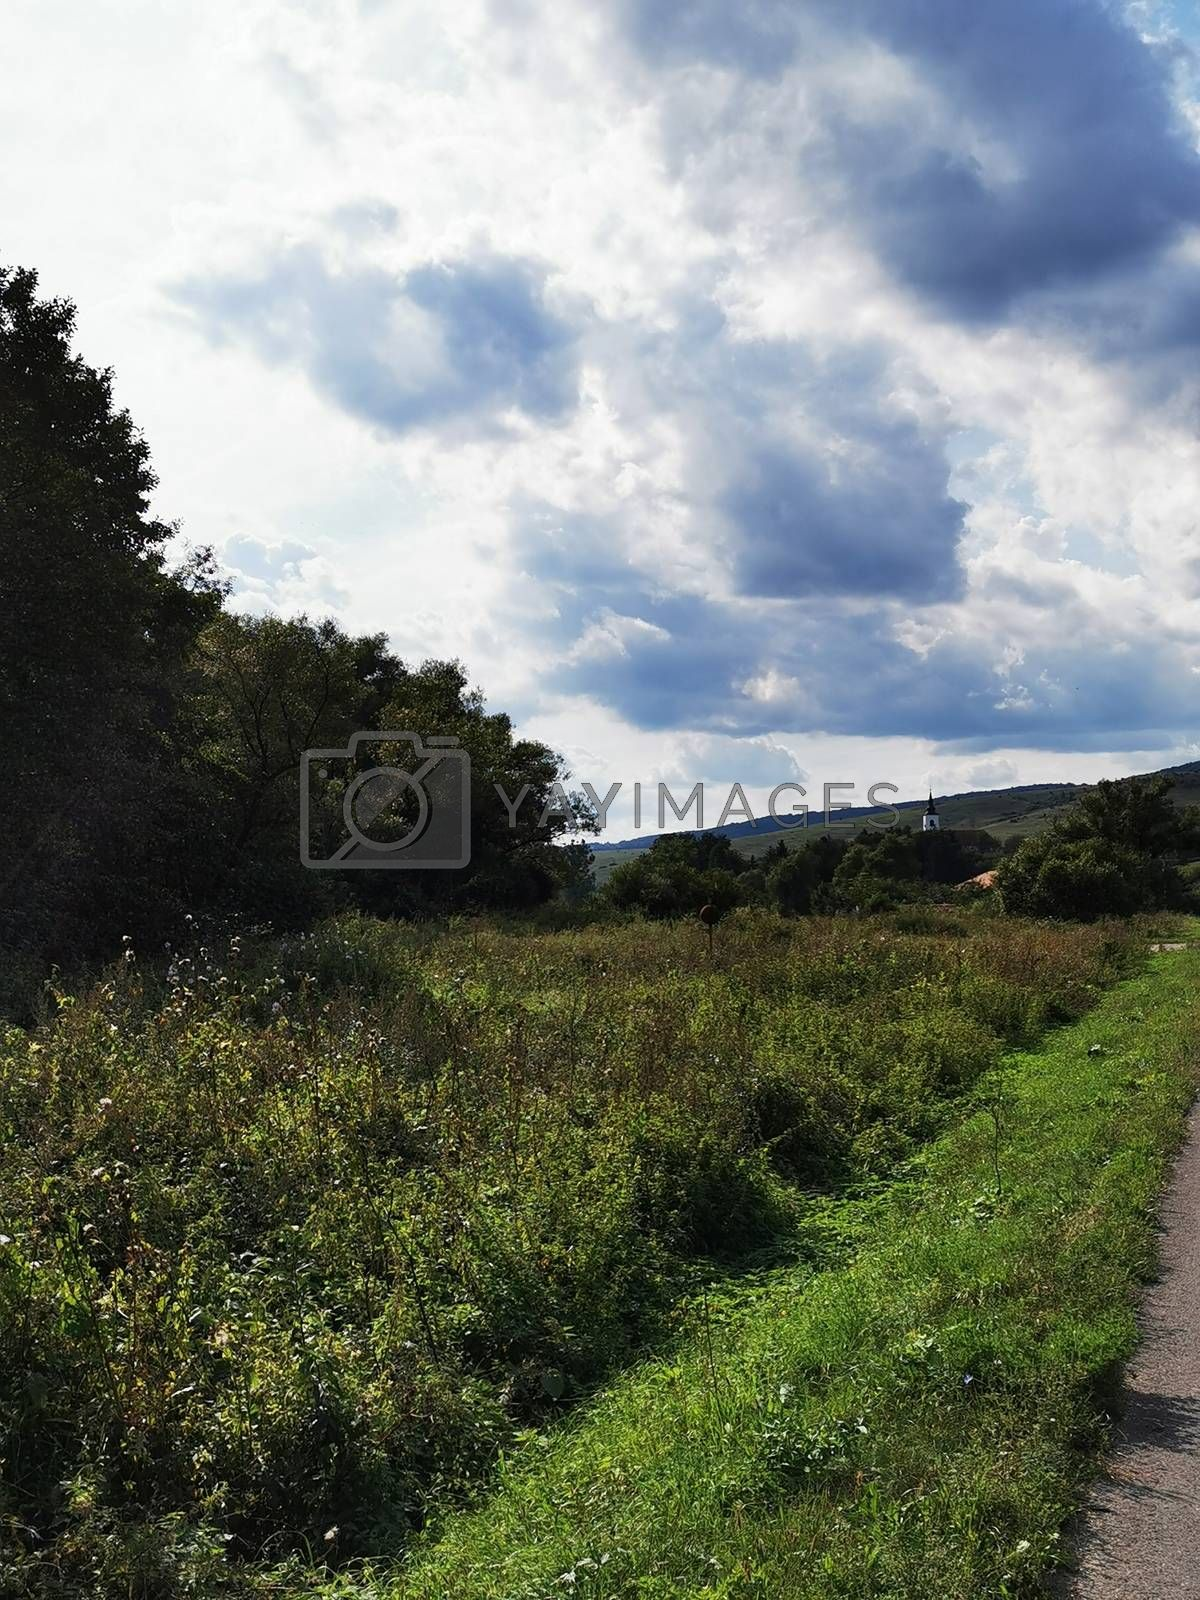 Royalty free image of A sign on the side of a hill by balage941